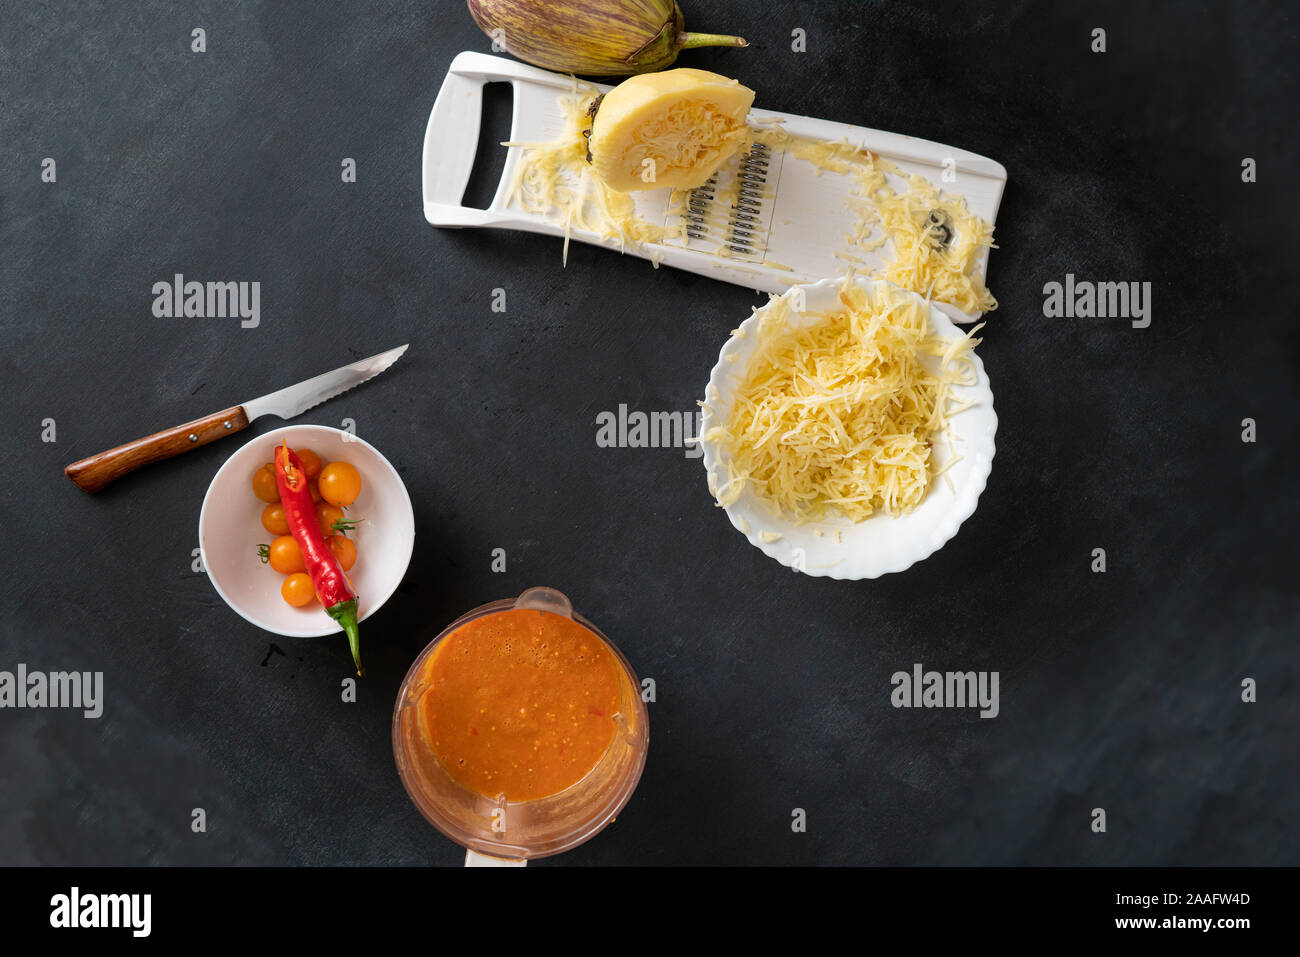 process of making and cooking the cut zucchini pasta spaghetti on the tables Stock Photo